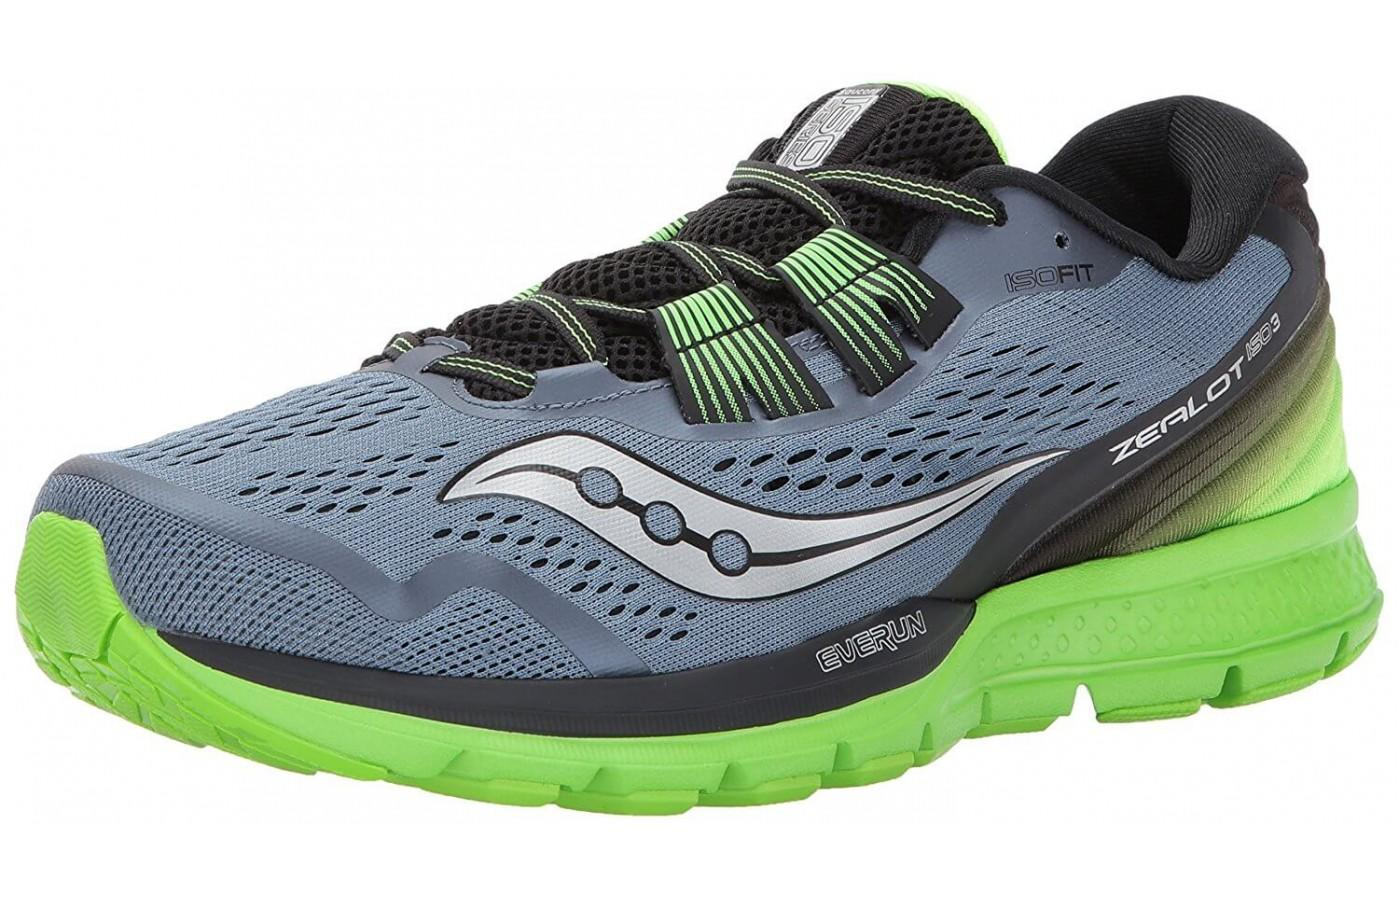 Saucony Zealot ISO 3 Review - To buy or not in 2020 ...